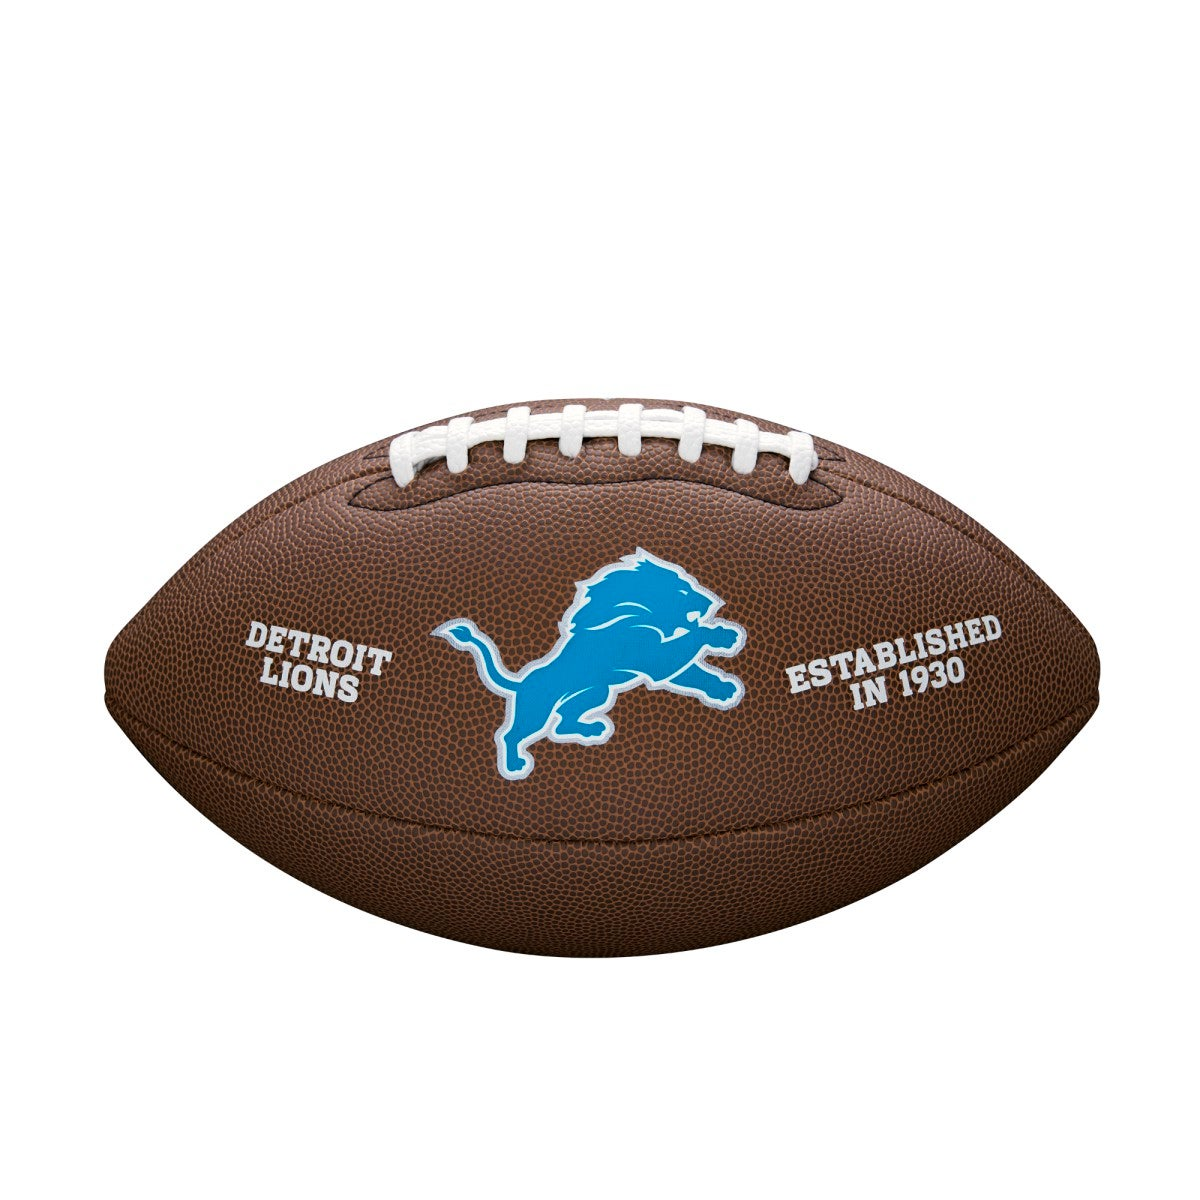 NFL TEAM LOGO COMPOSITE FOOTBALL - OFFICIAL, DETROIT LIONS